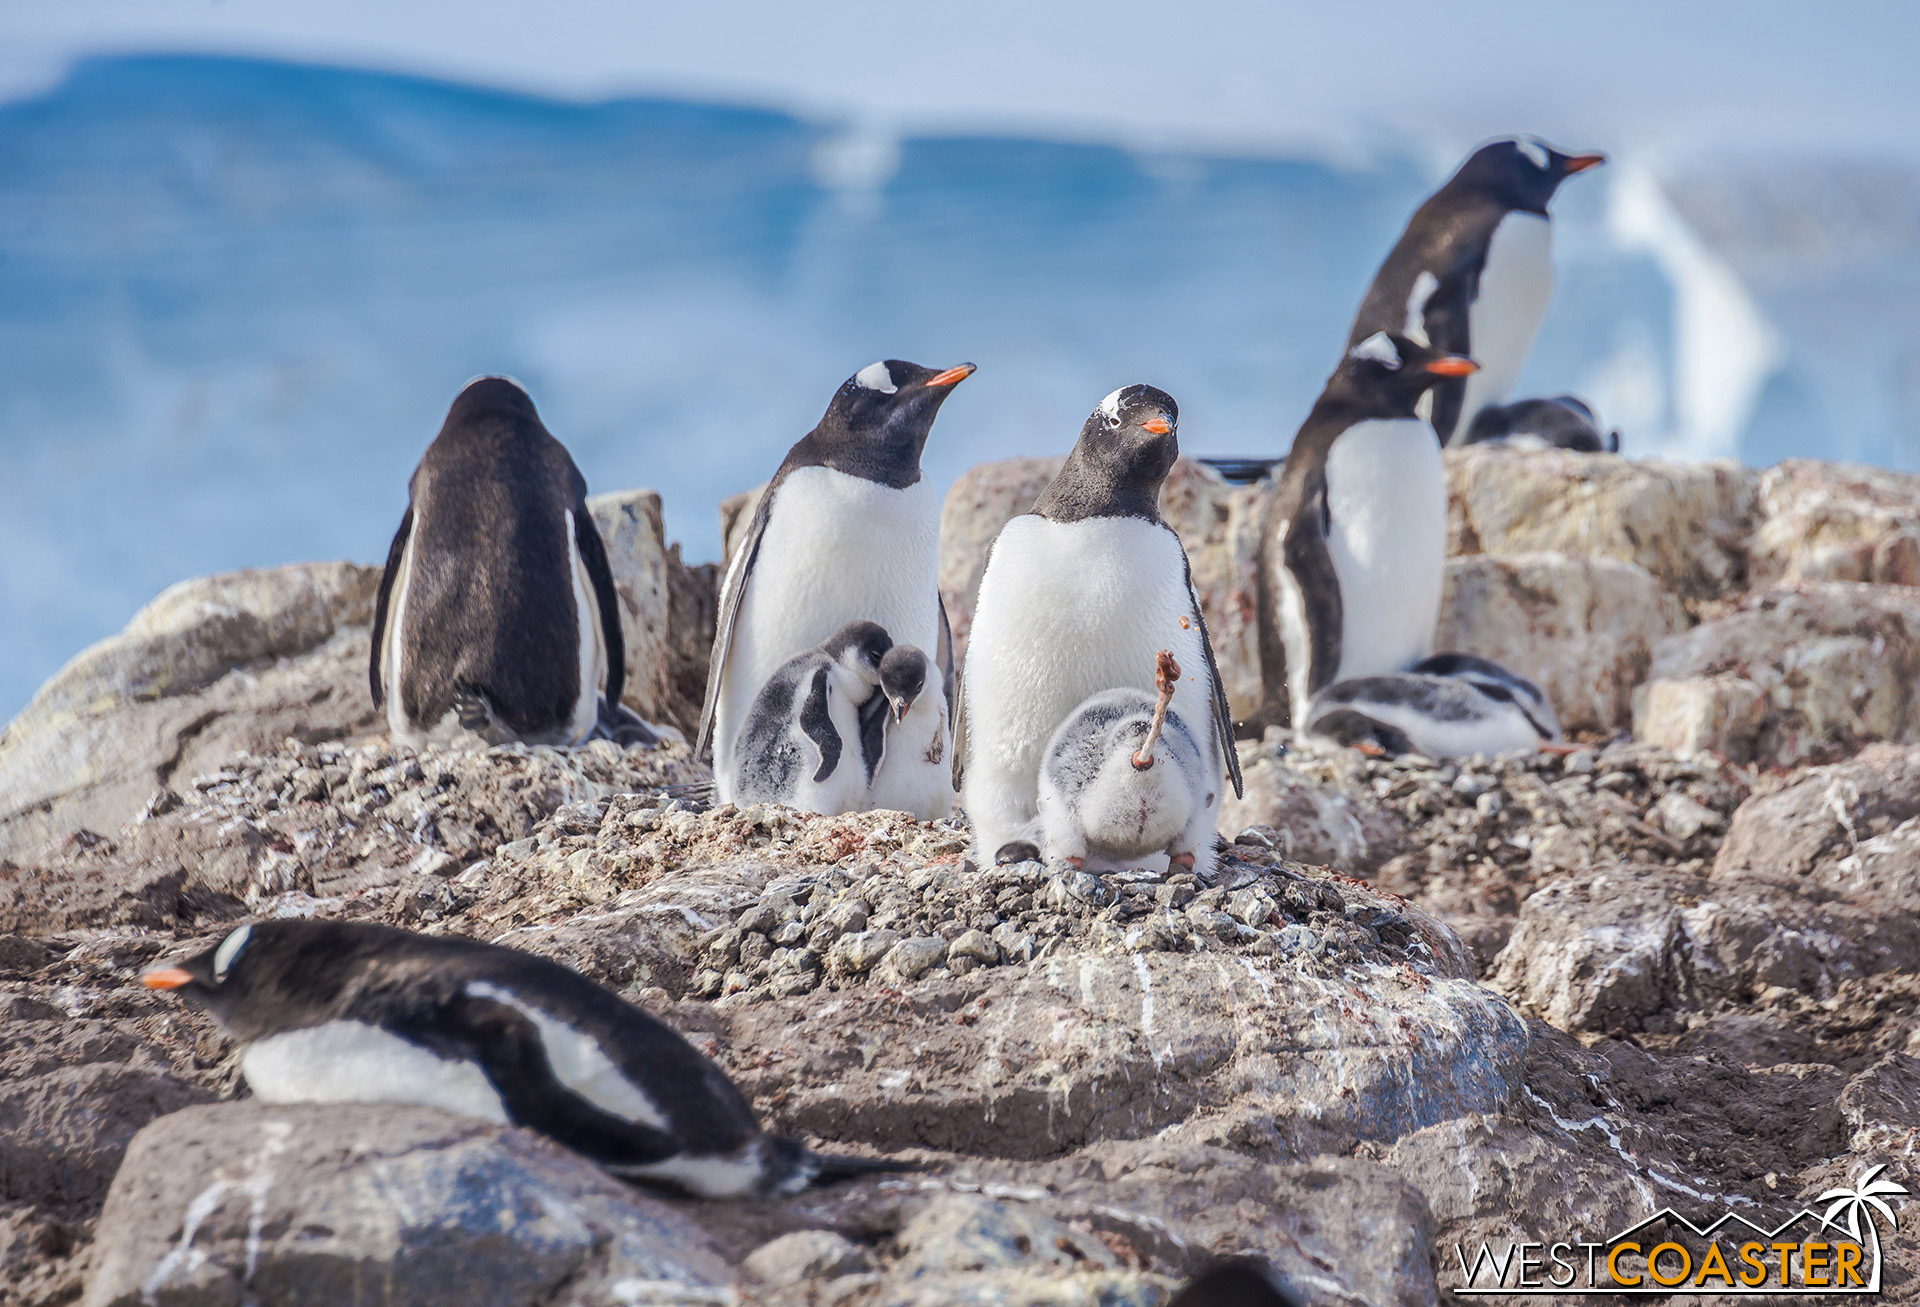 What a lovely photo of a group of penguins, but wait a minute…